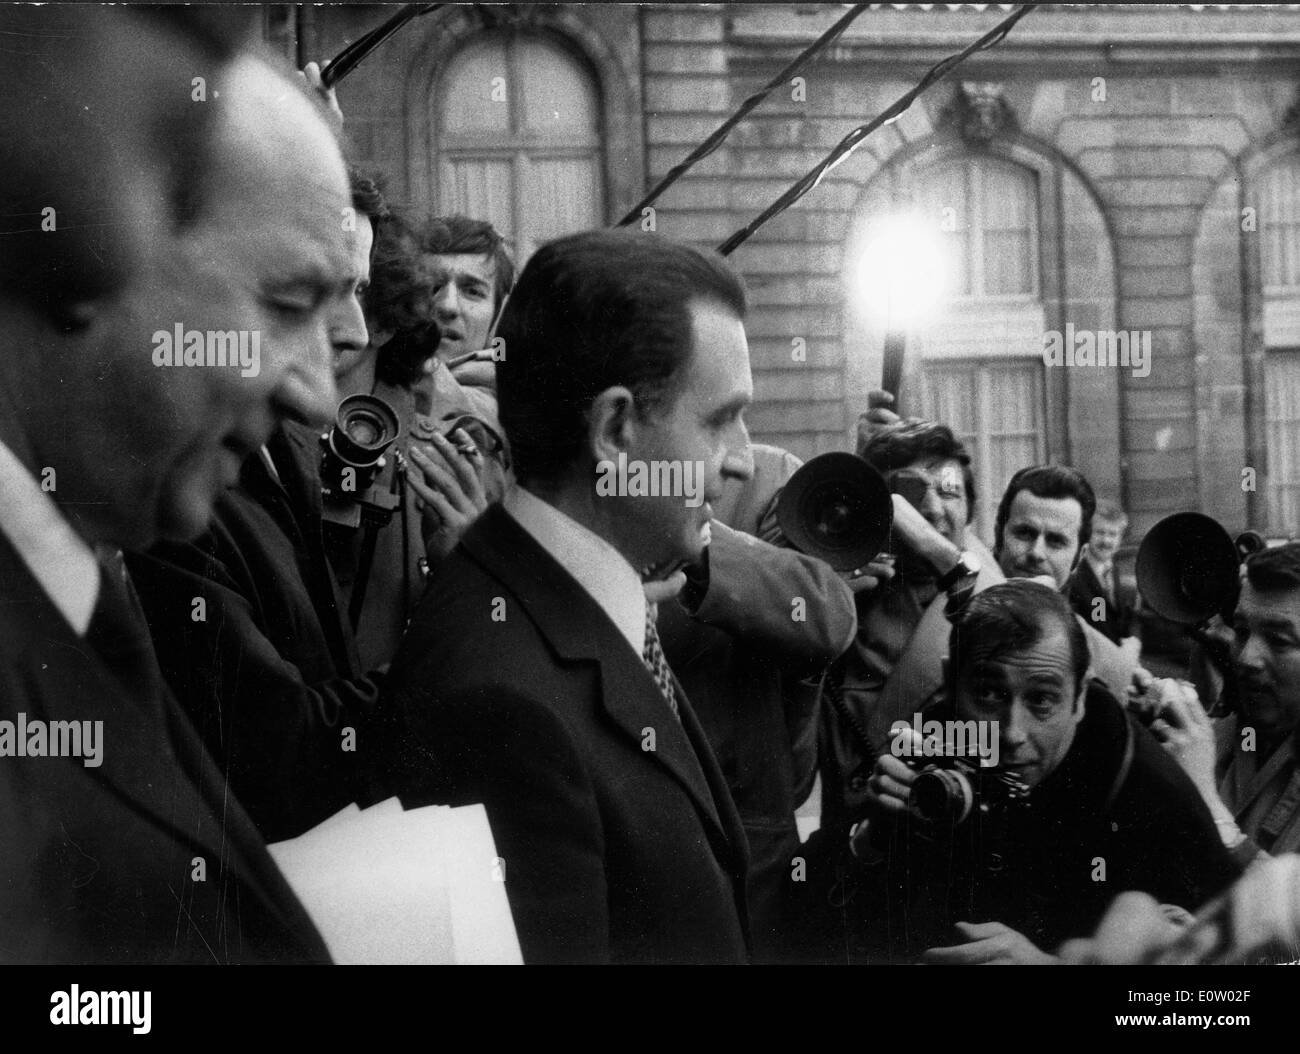 Raymond Marcellin being photographed by paparazzi - Stock Image